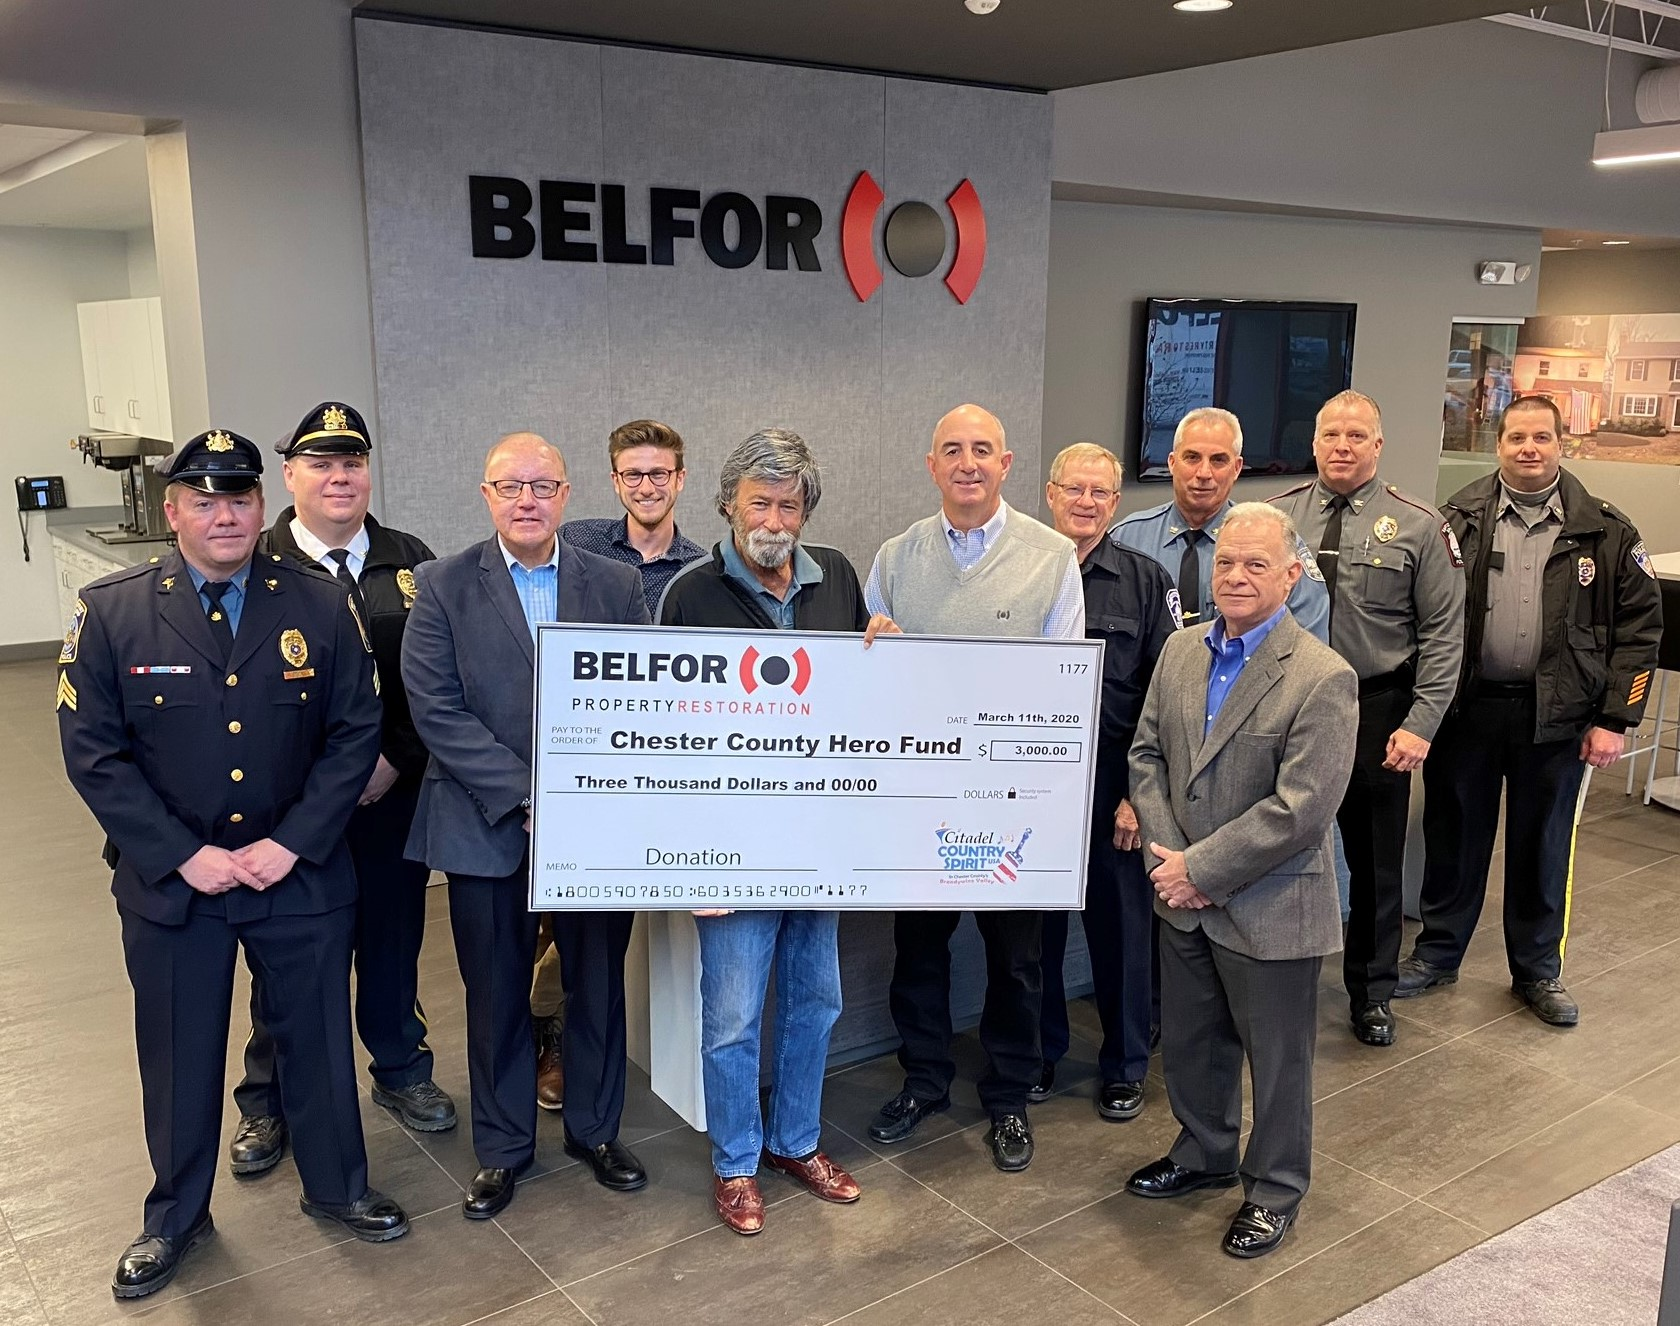 BELFOR Property Restoration Makes Citadel Country Spirit USA Contribution to Chester County Hero Fund